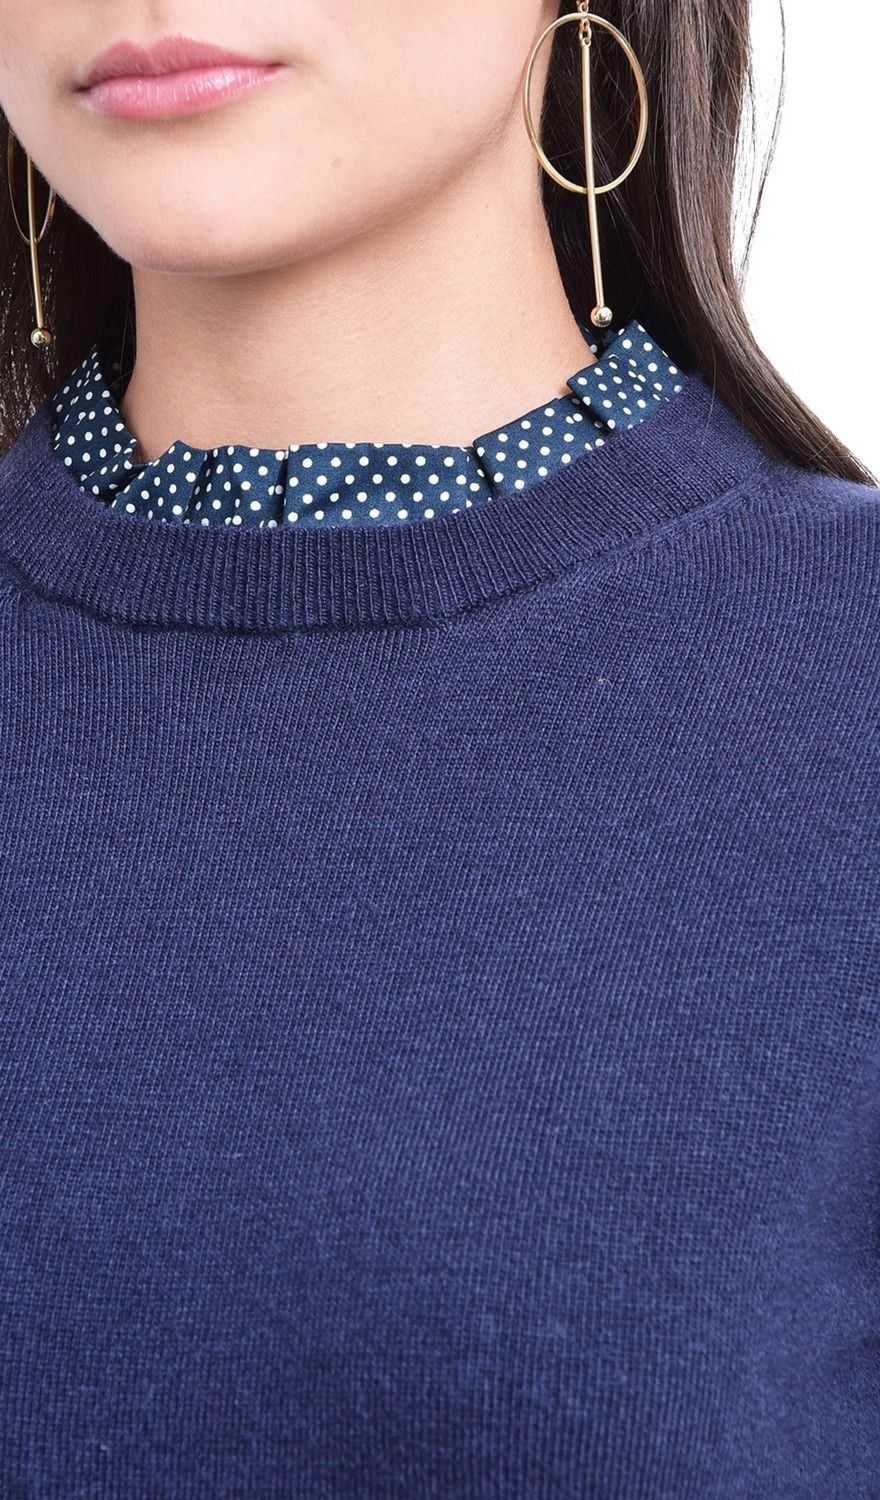 Assuili Polka Dot Ruffle Collar Sweater in Navy